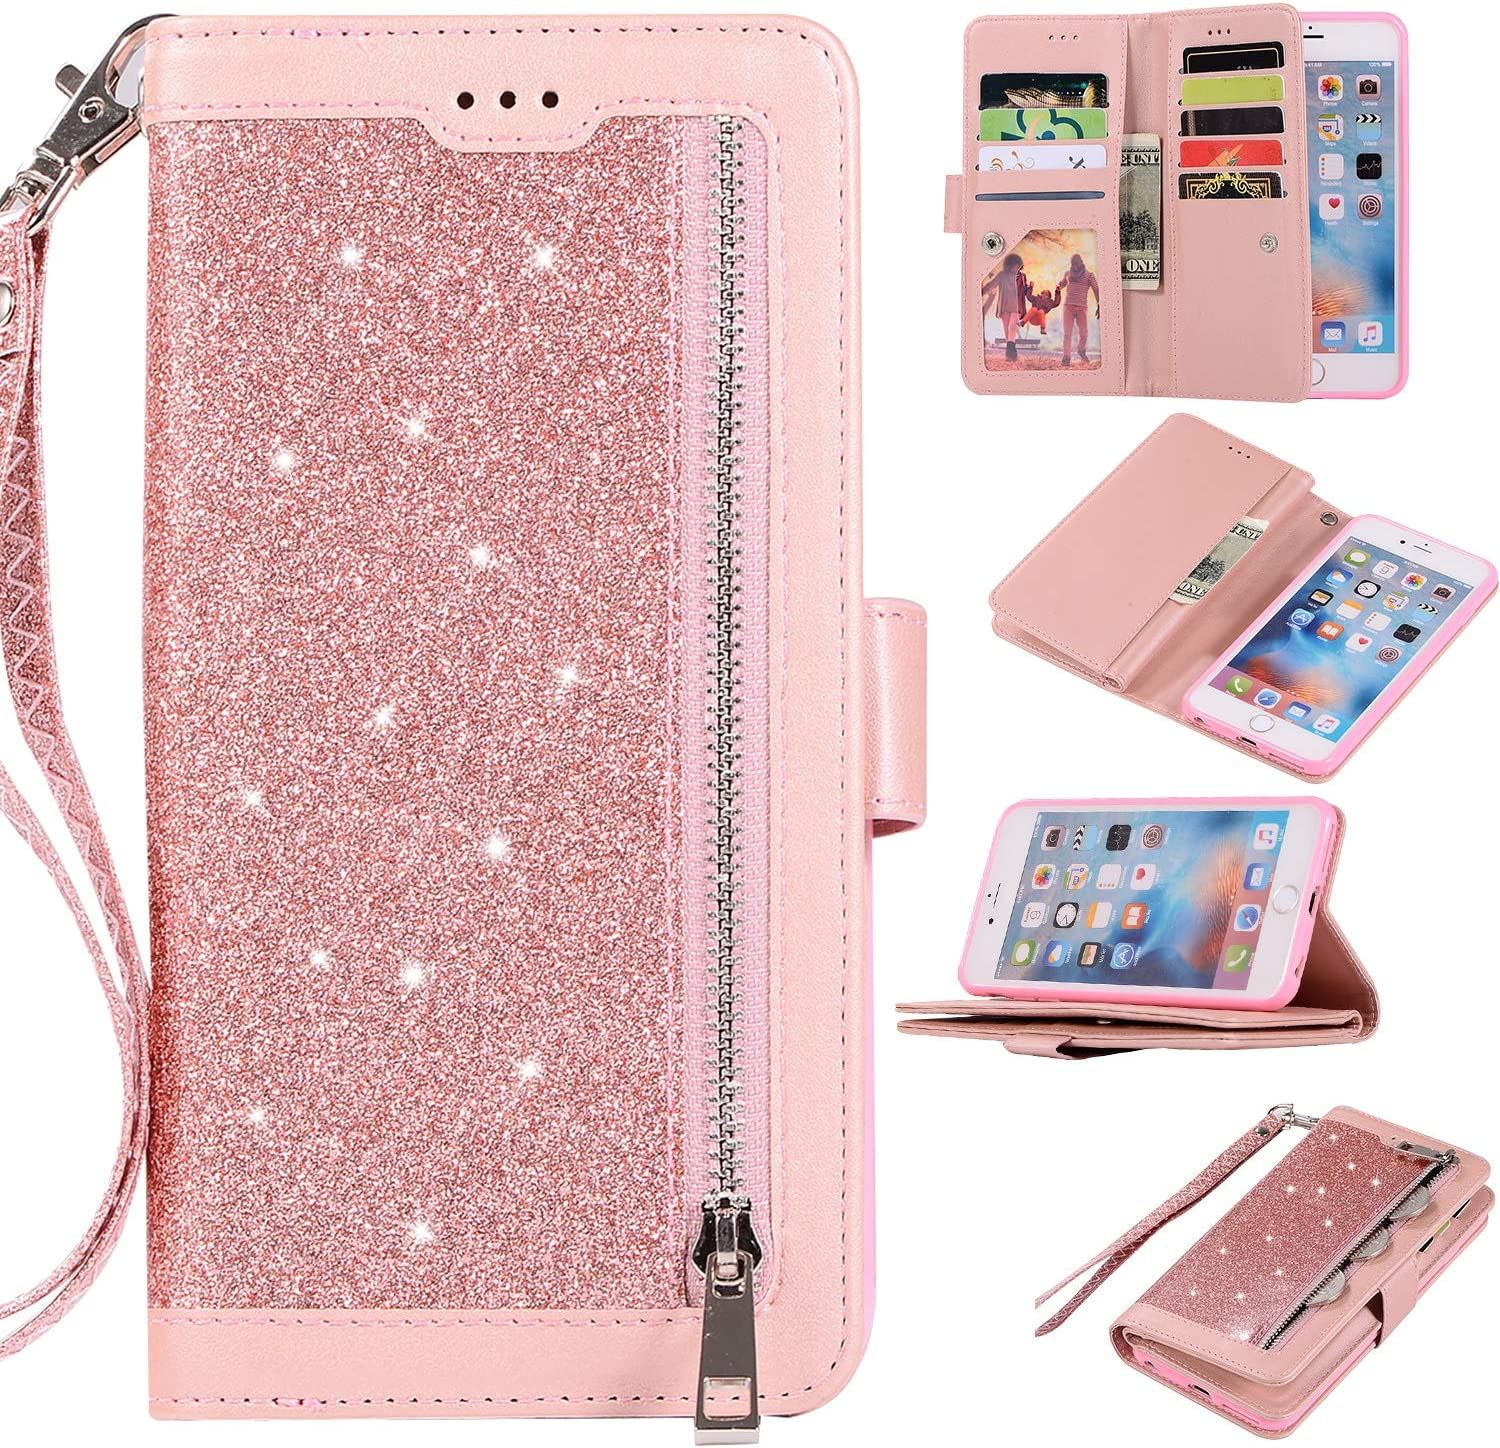 EYZUTAK Wallet Case for iPhone 6 Plus iPhone 6S Plus,Magnetic Handbag Zipper Pocket PU Leather Flip with 9 Card Slots and Wrist Strap Folio TPU Inner Stand Case for iPhone 6 Plus/6S Plus - Rose Gold